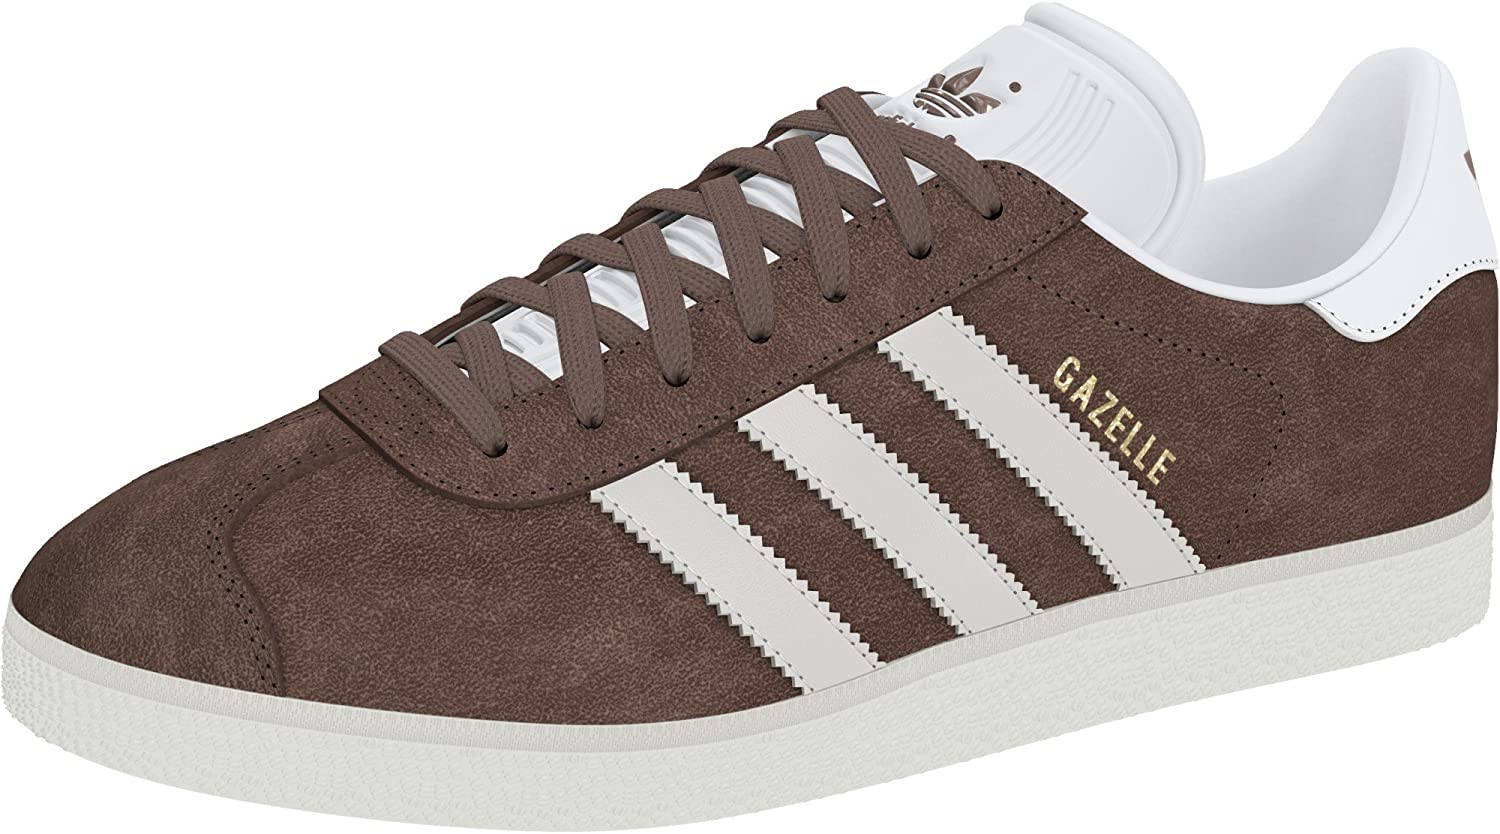 Chaussures Adidas Gazelle Marron BY8957 : Amazon.fr: Chaussures et ...